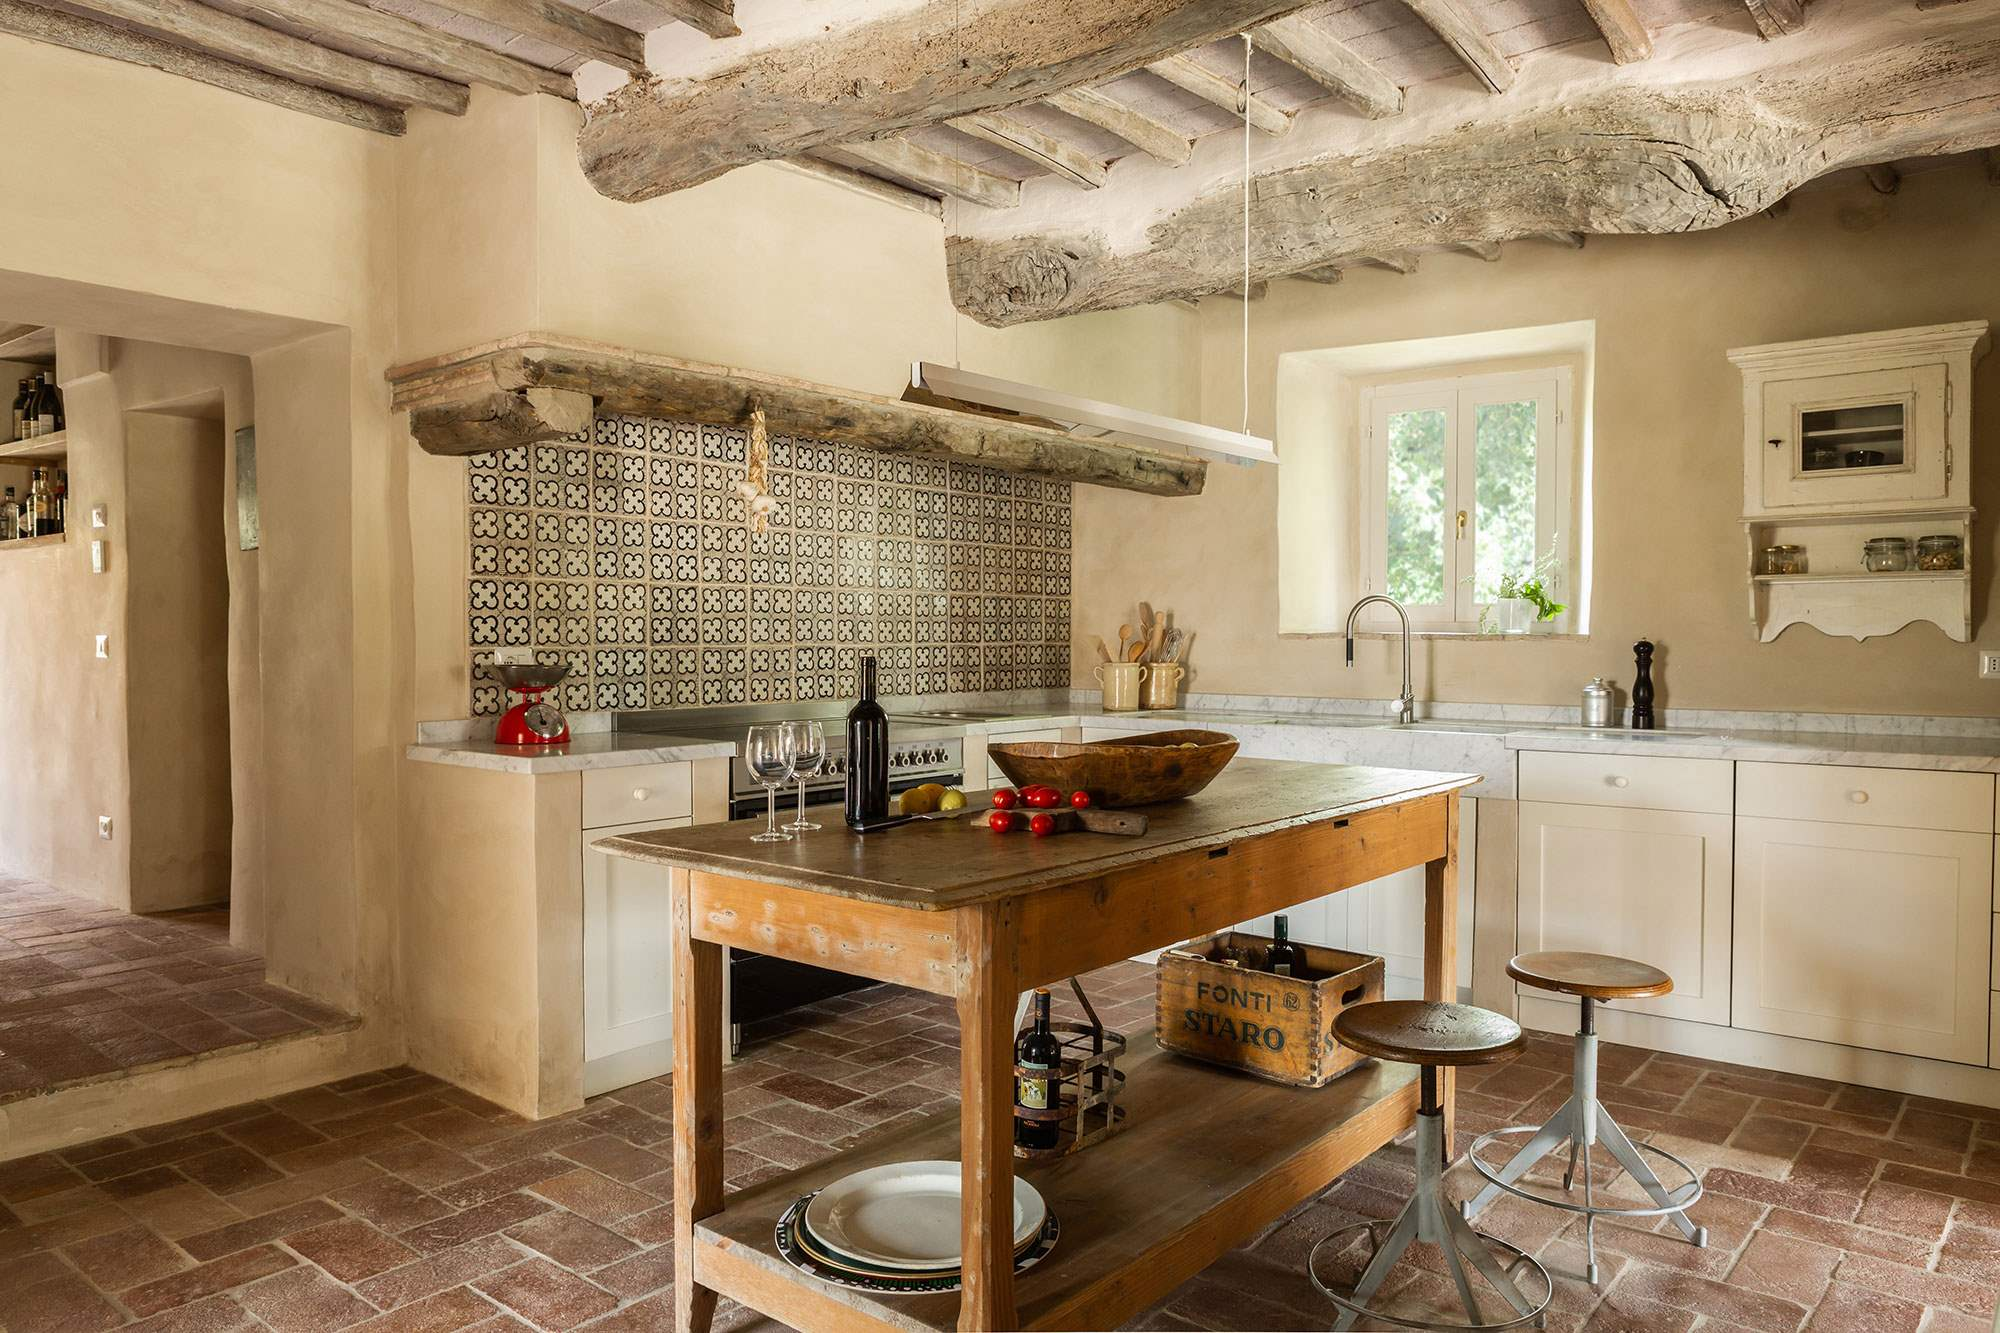 Villa Lecchi, 5 bedroom villa in Chianti & Countryside, Tuscany Photo #7